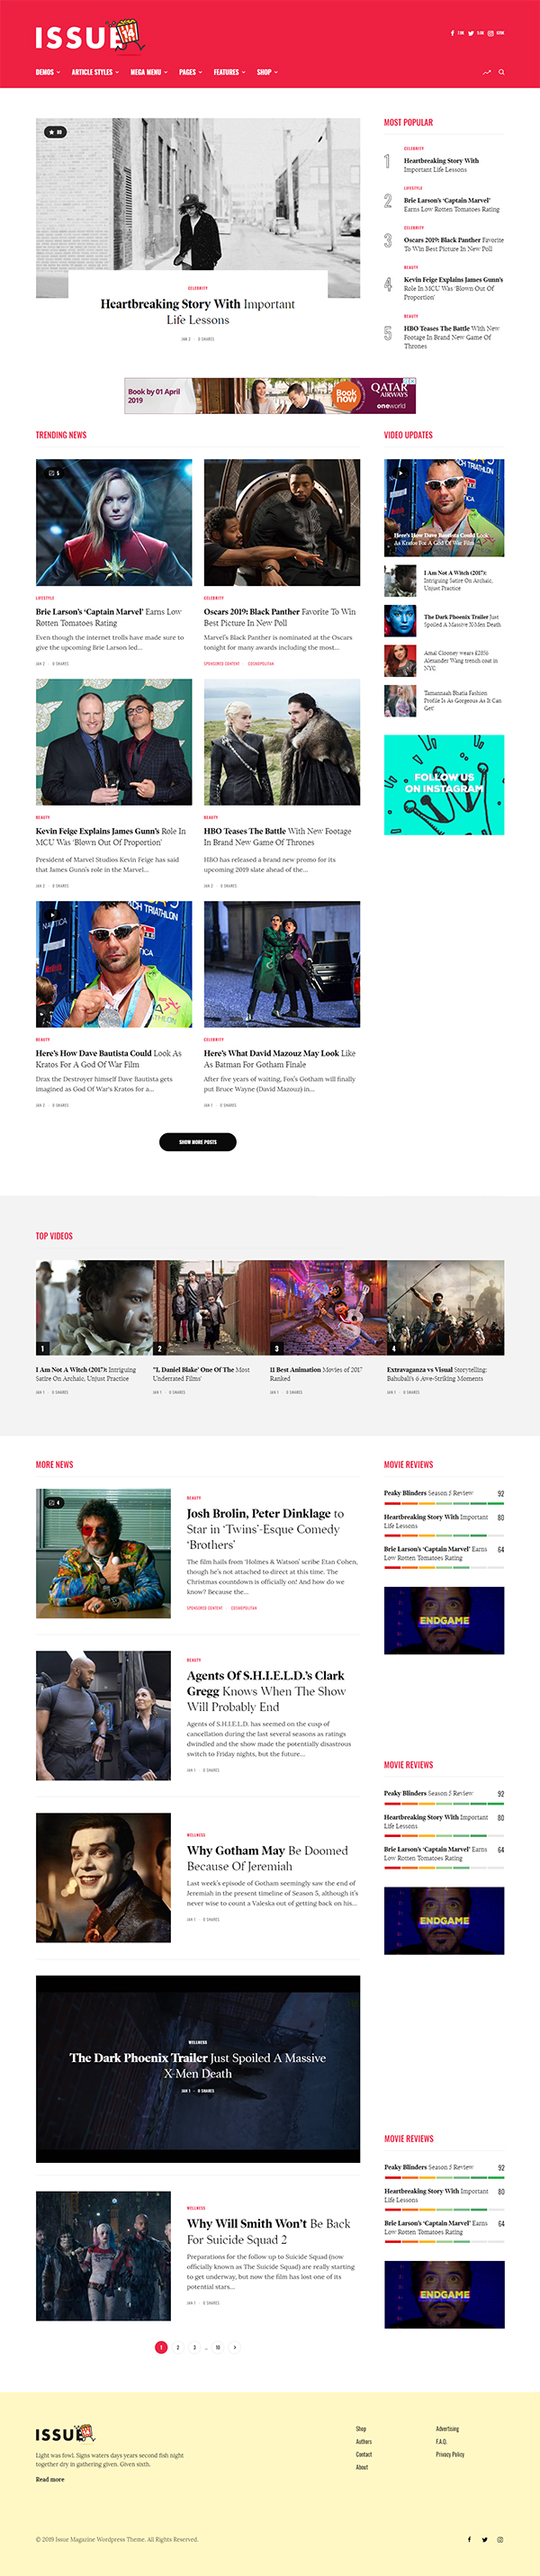 The Issue - Versatile Magazine Theme